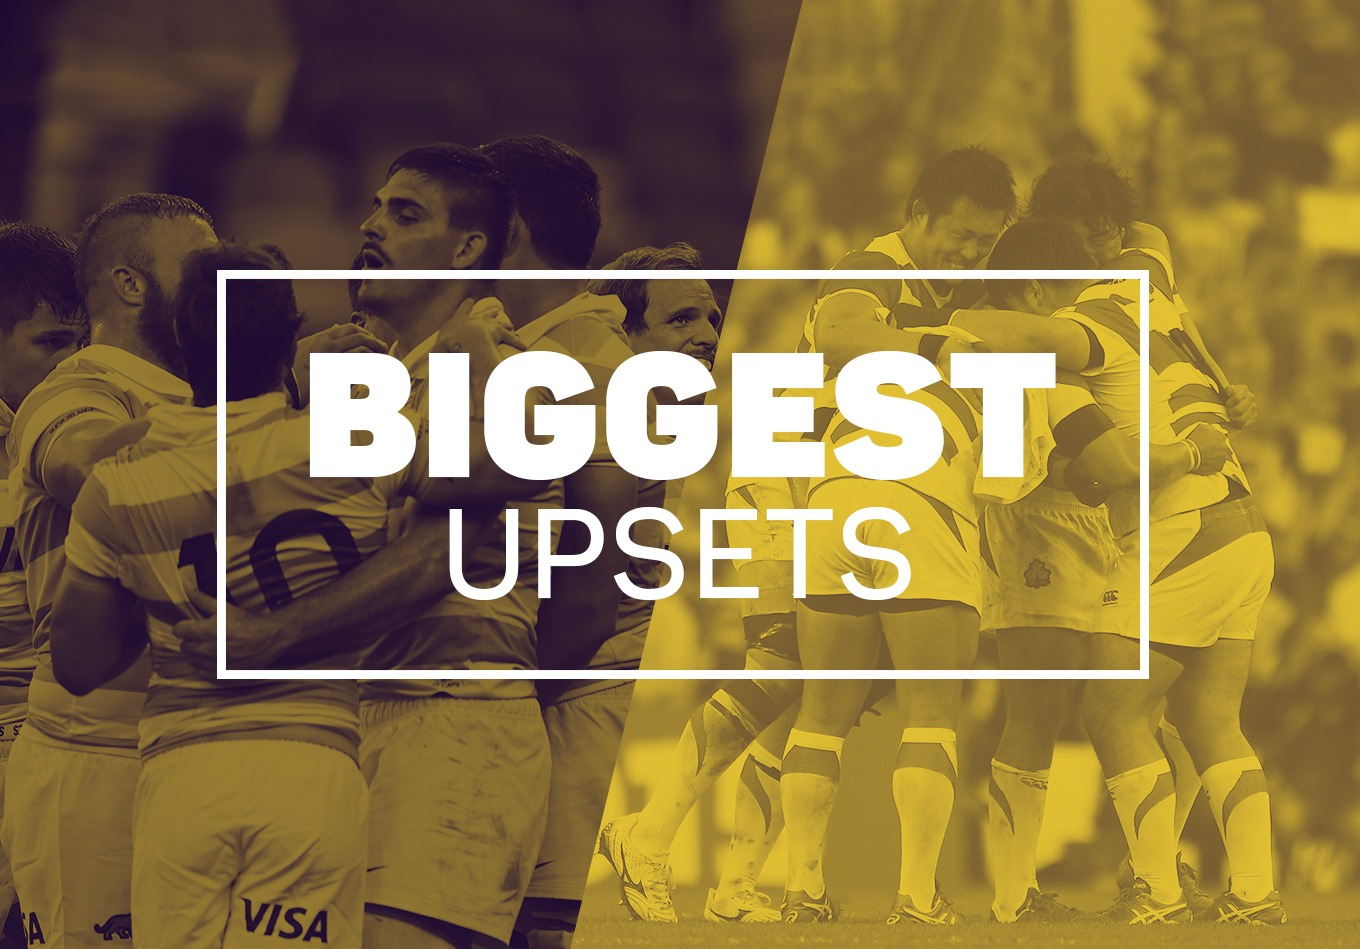 The Biggest Upsets in Recent Rugby History and the Data Behind Them